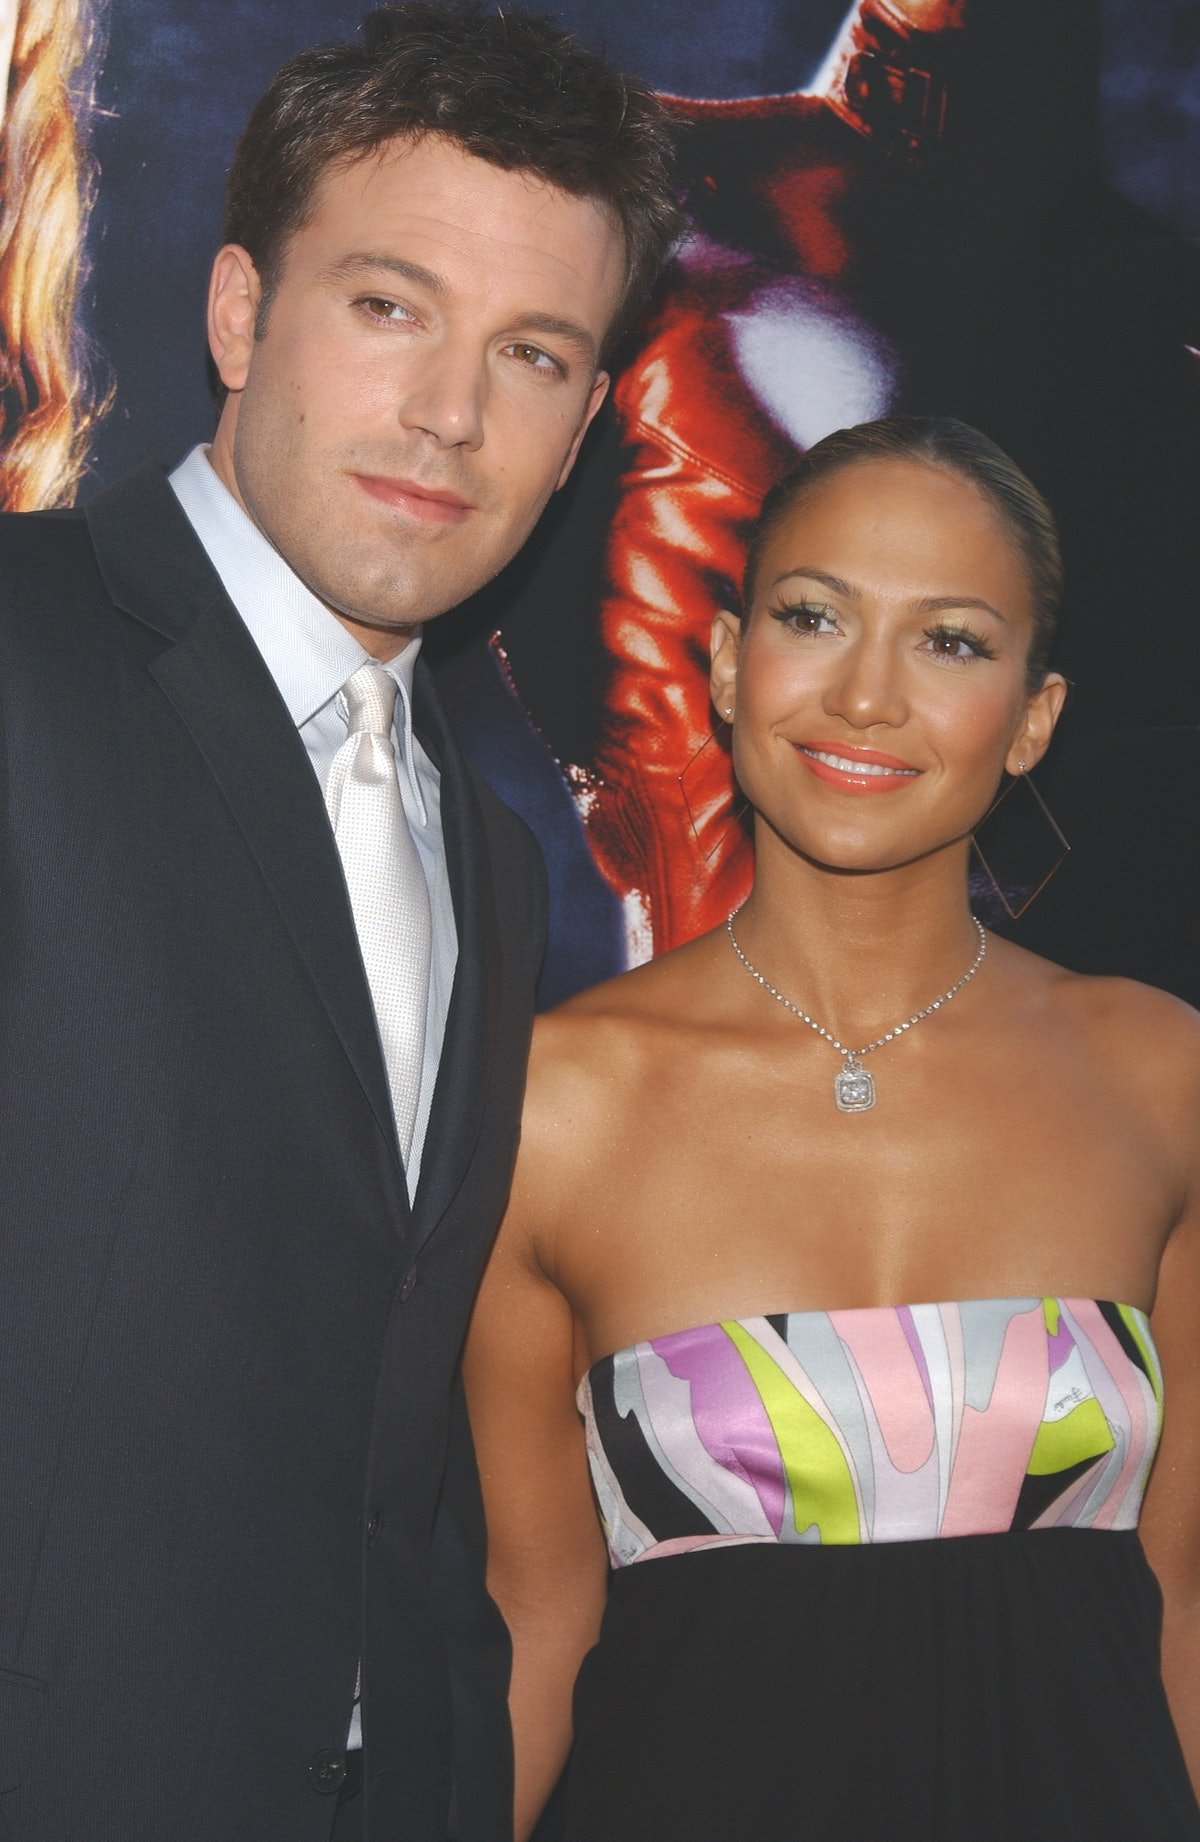 """Ben Affleck and Jennifer Lopez arriving at the premiere of """"Daredevil."""" (Photo by Frank Trapper/Corbis via Getty Images)"""